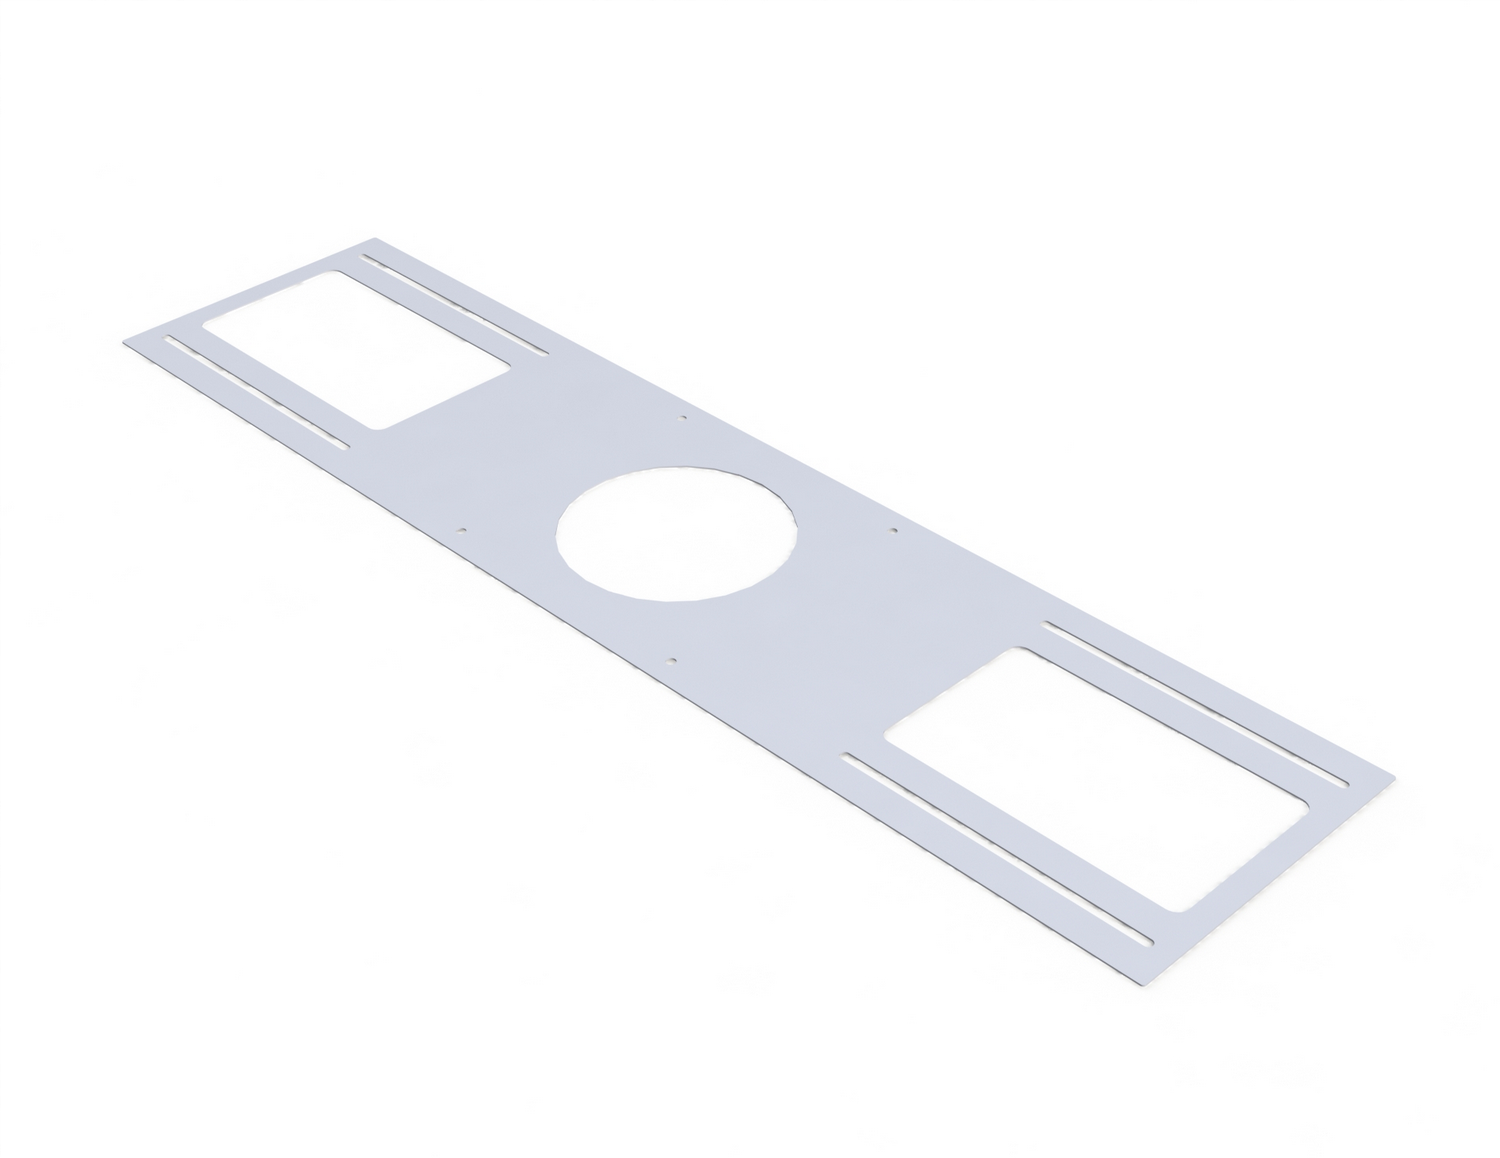 Disc Light Mounting Plate from the Brio Disc Light collection by American Lighting BR4 MP RD